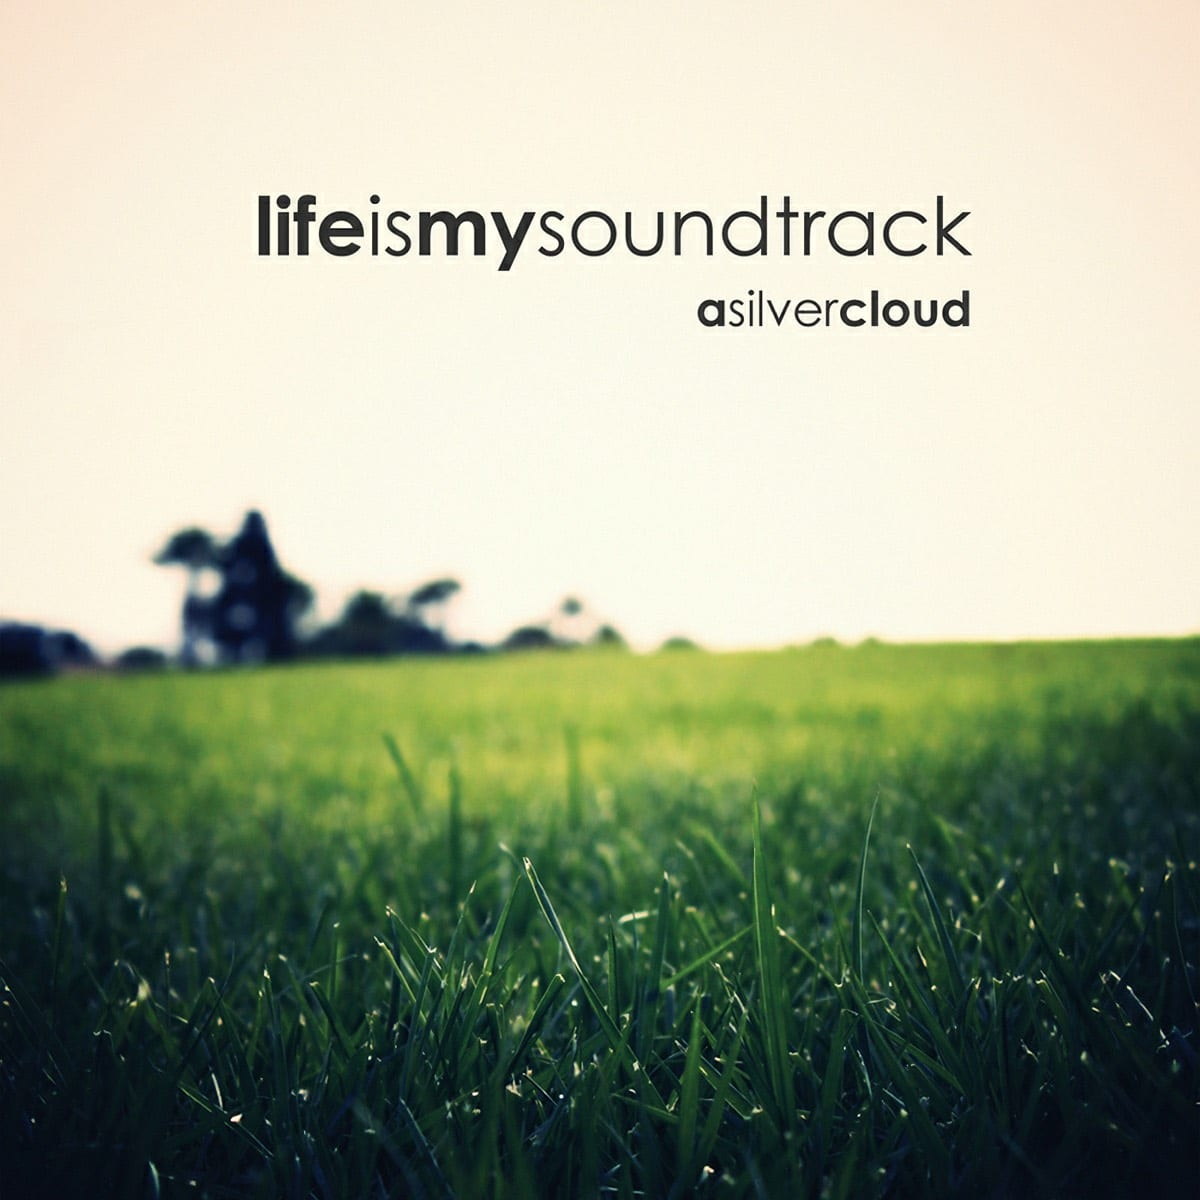 The album A Silver Cloud by Life Is My Soundtrack - Relaxing piano melodies against a backdrop of cinematic soundscapes